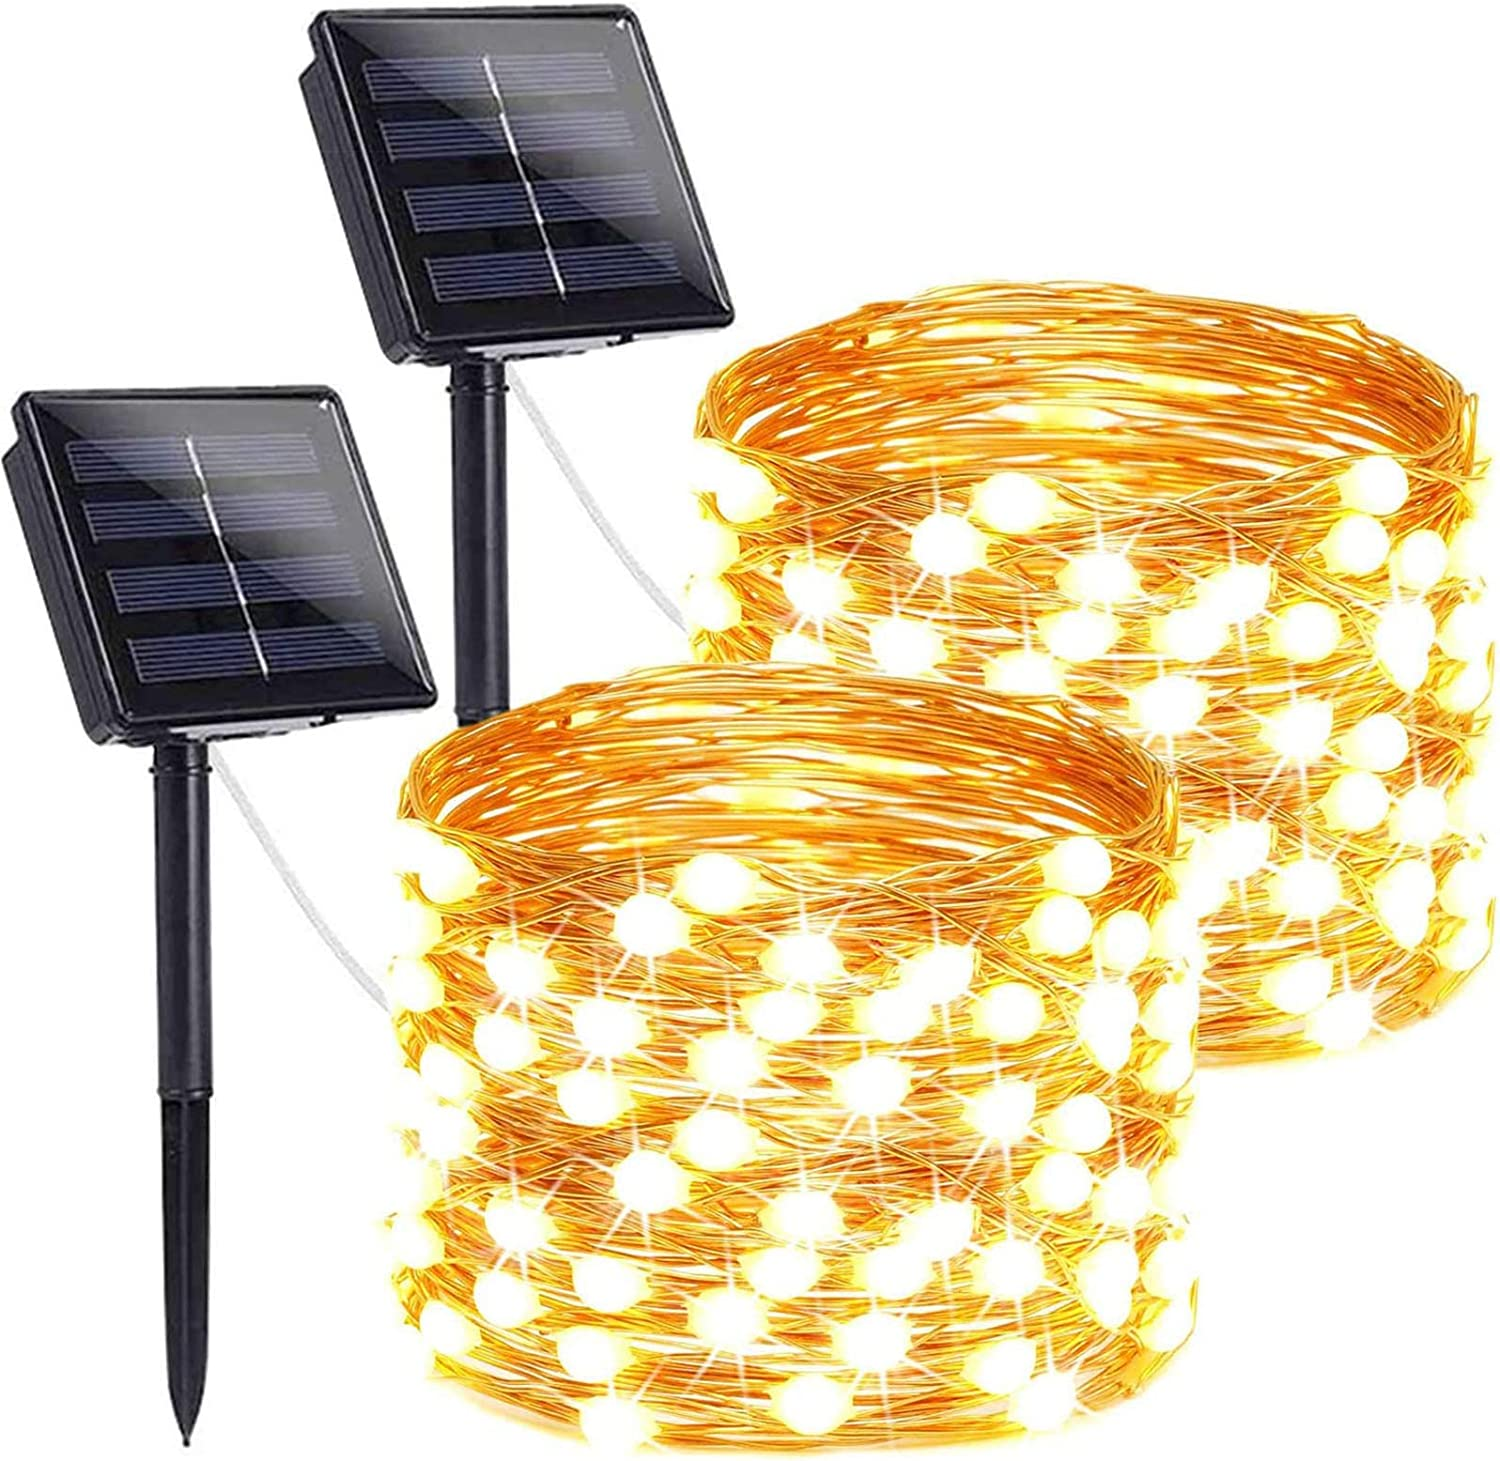 LORRYTE 2-Pack Outdoor Solar String Lights (Ultra-Bright & Super Durable), 200LED Solar Christmas Lights Outdoor Waterproof Copper Wire 8 Modes Fairy Lights for Christmas Party Garden (Warm White)